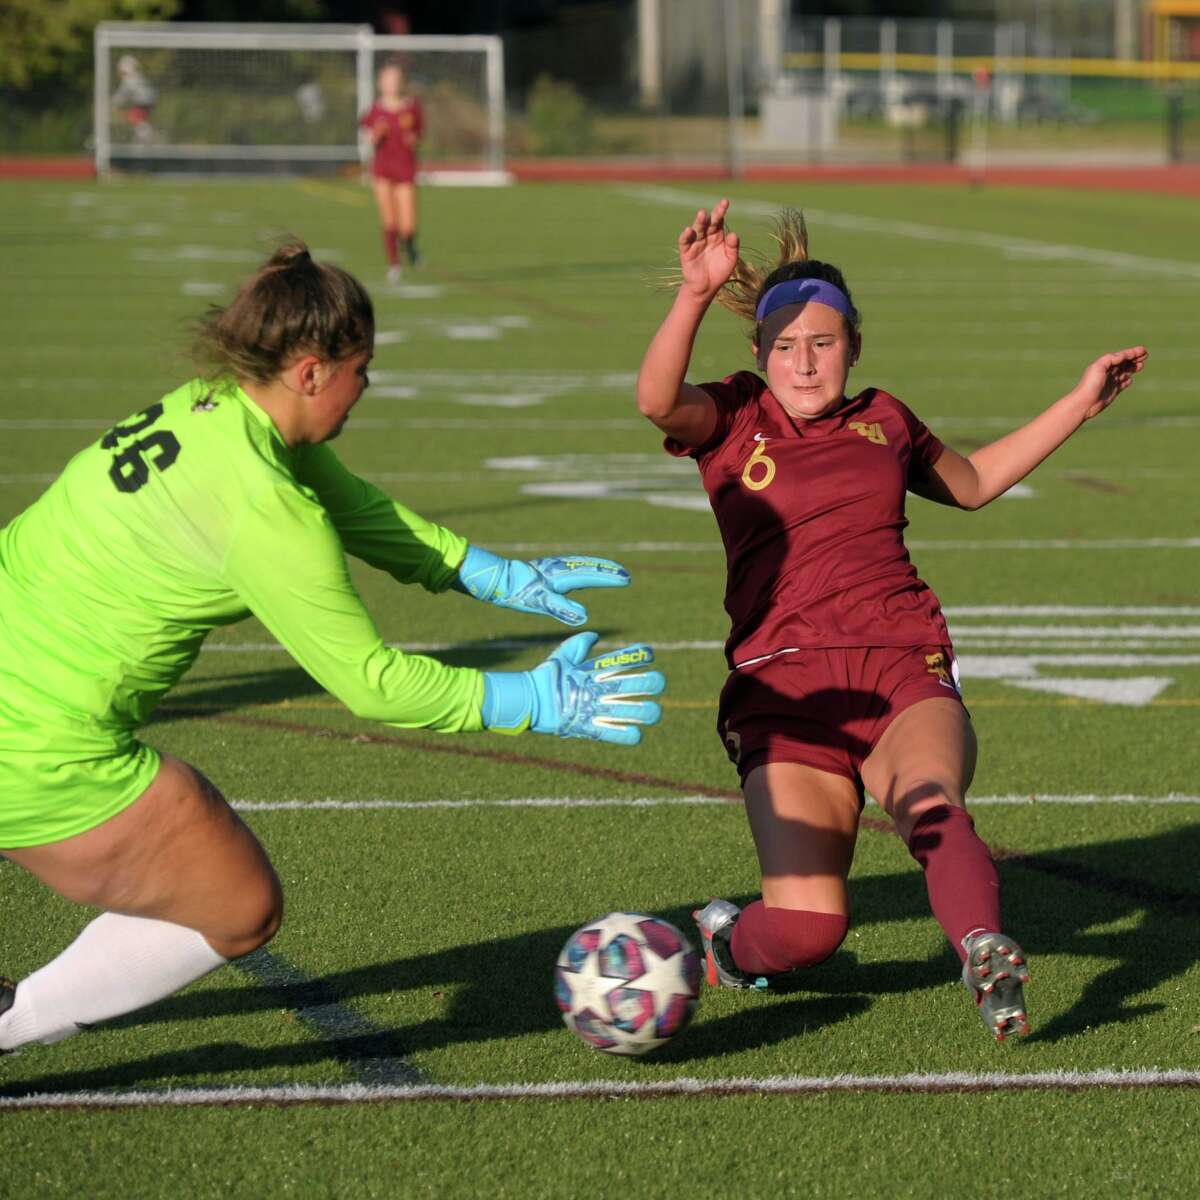 Trumbull goalie Julia Marin runs out to block a kick by St. Joseph's Caroline Sheehan during high school soccer action at St. Joseph High School, in Trumbull, Conn. Oct. 1, 2020.